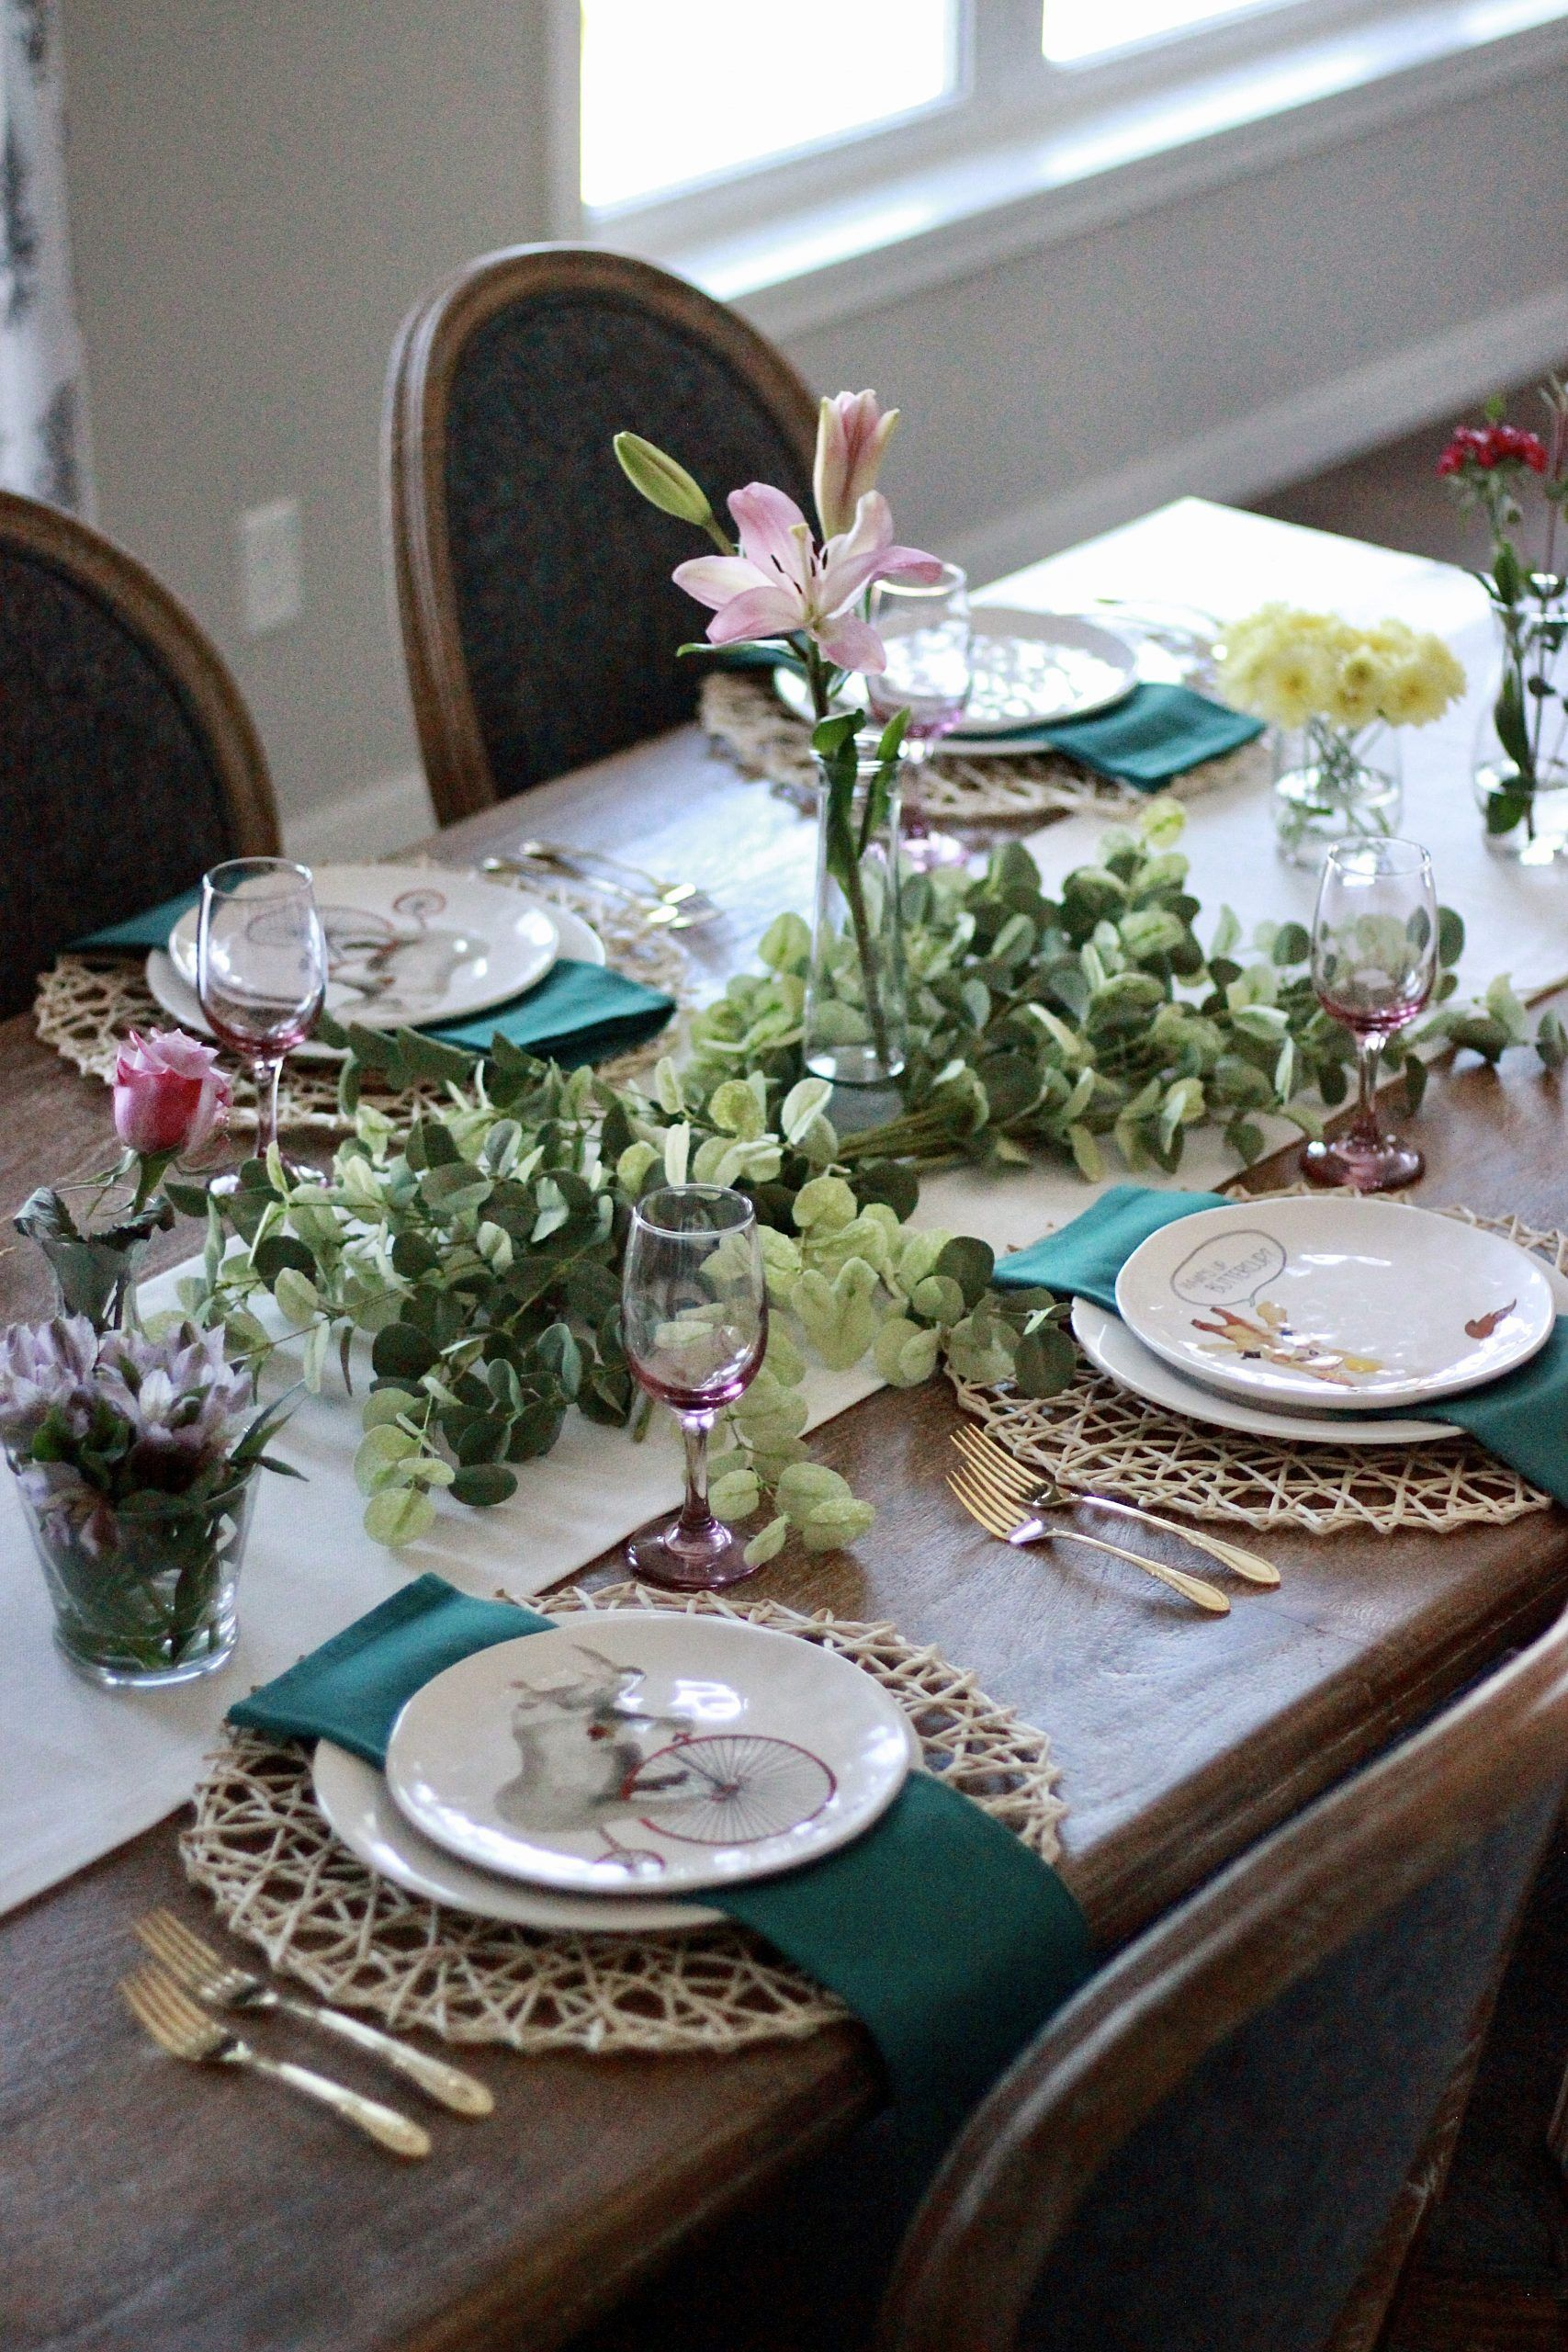 Easy tablescape ideas perfect for a girls night in // spring table setting // tablescape decor // #tablescapes // #tablesetting // #springtable